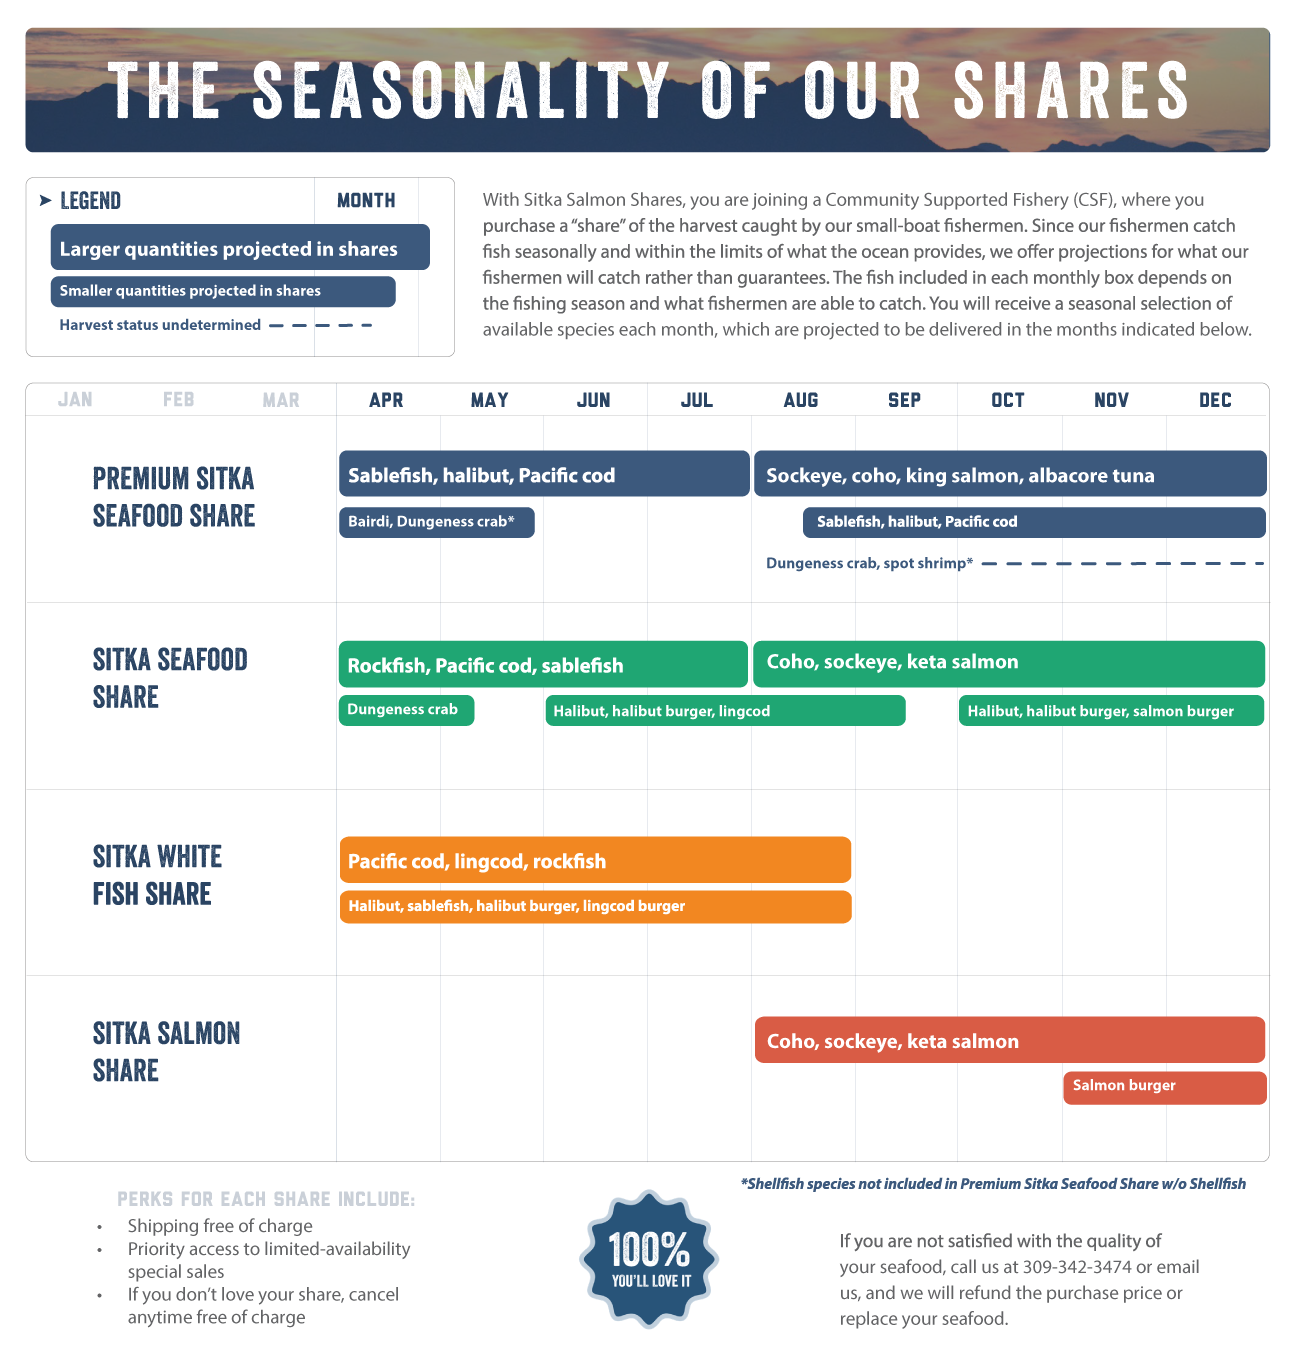 A comparison of our 2021 shares, use the link below to open the text-accessible PDF